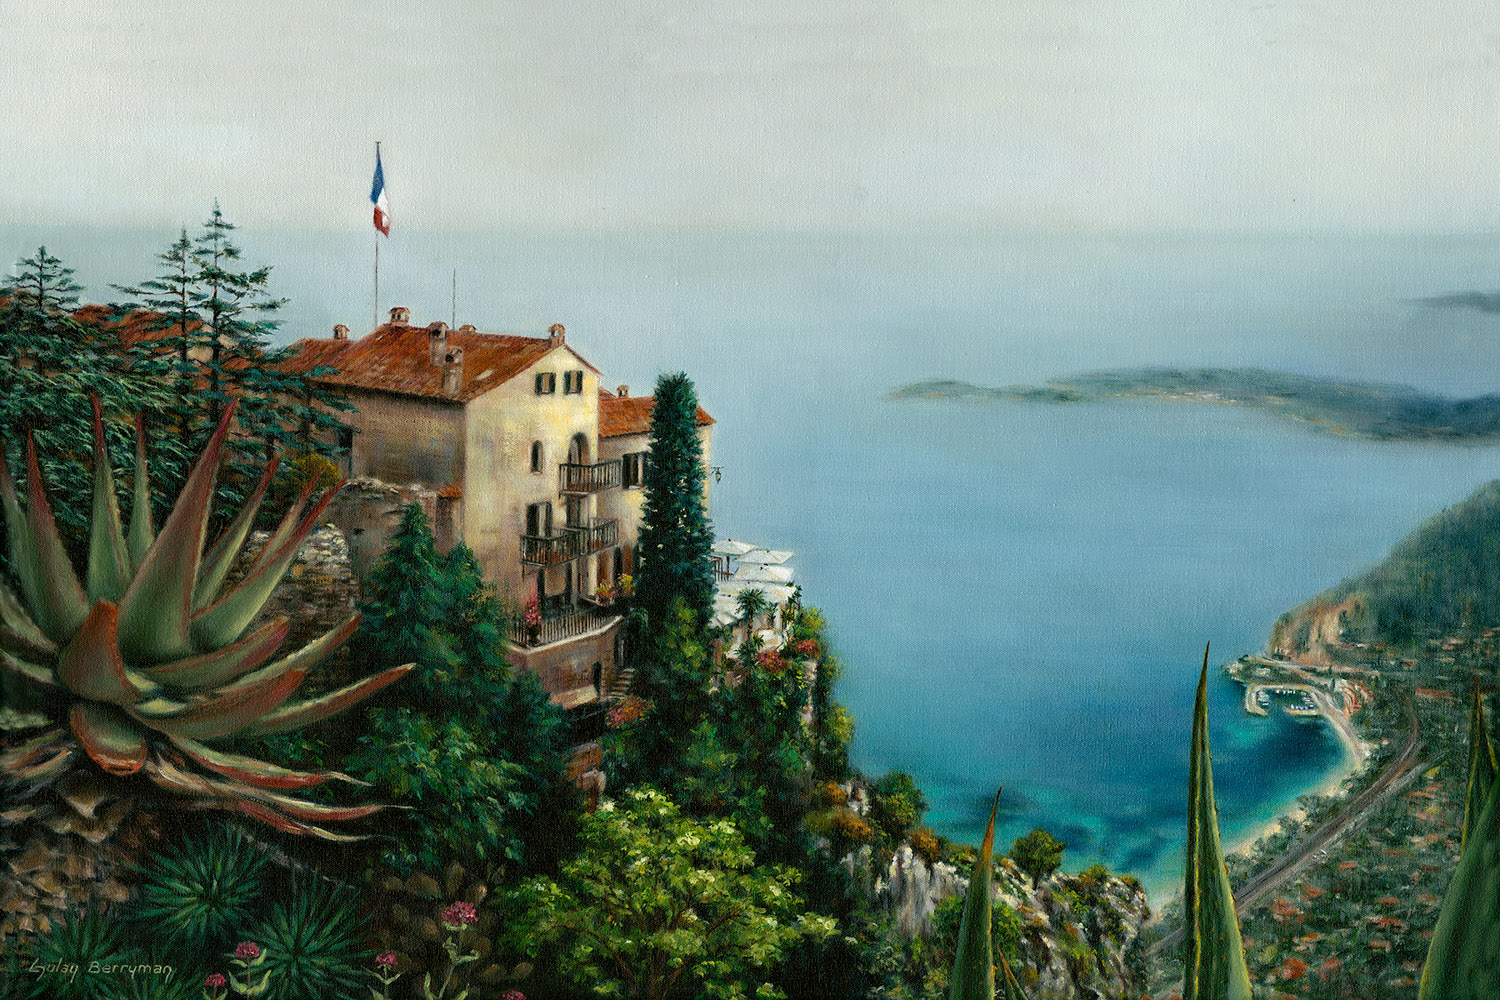 View from Eze (Looking Toward St. Jean Cap Ferrat) | oil on canvas by Gulay Berryman